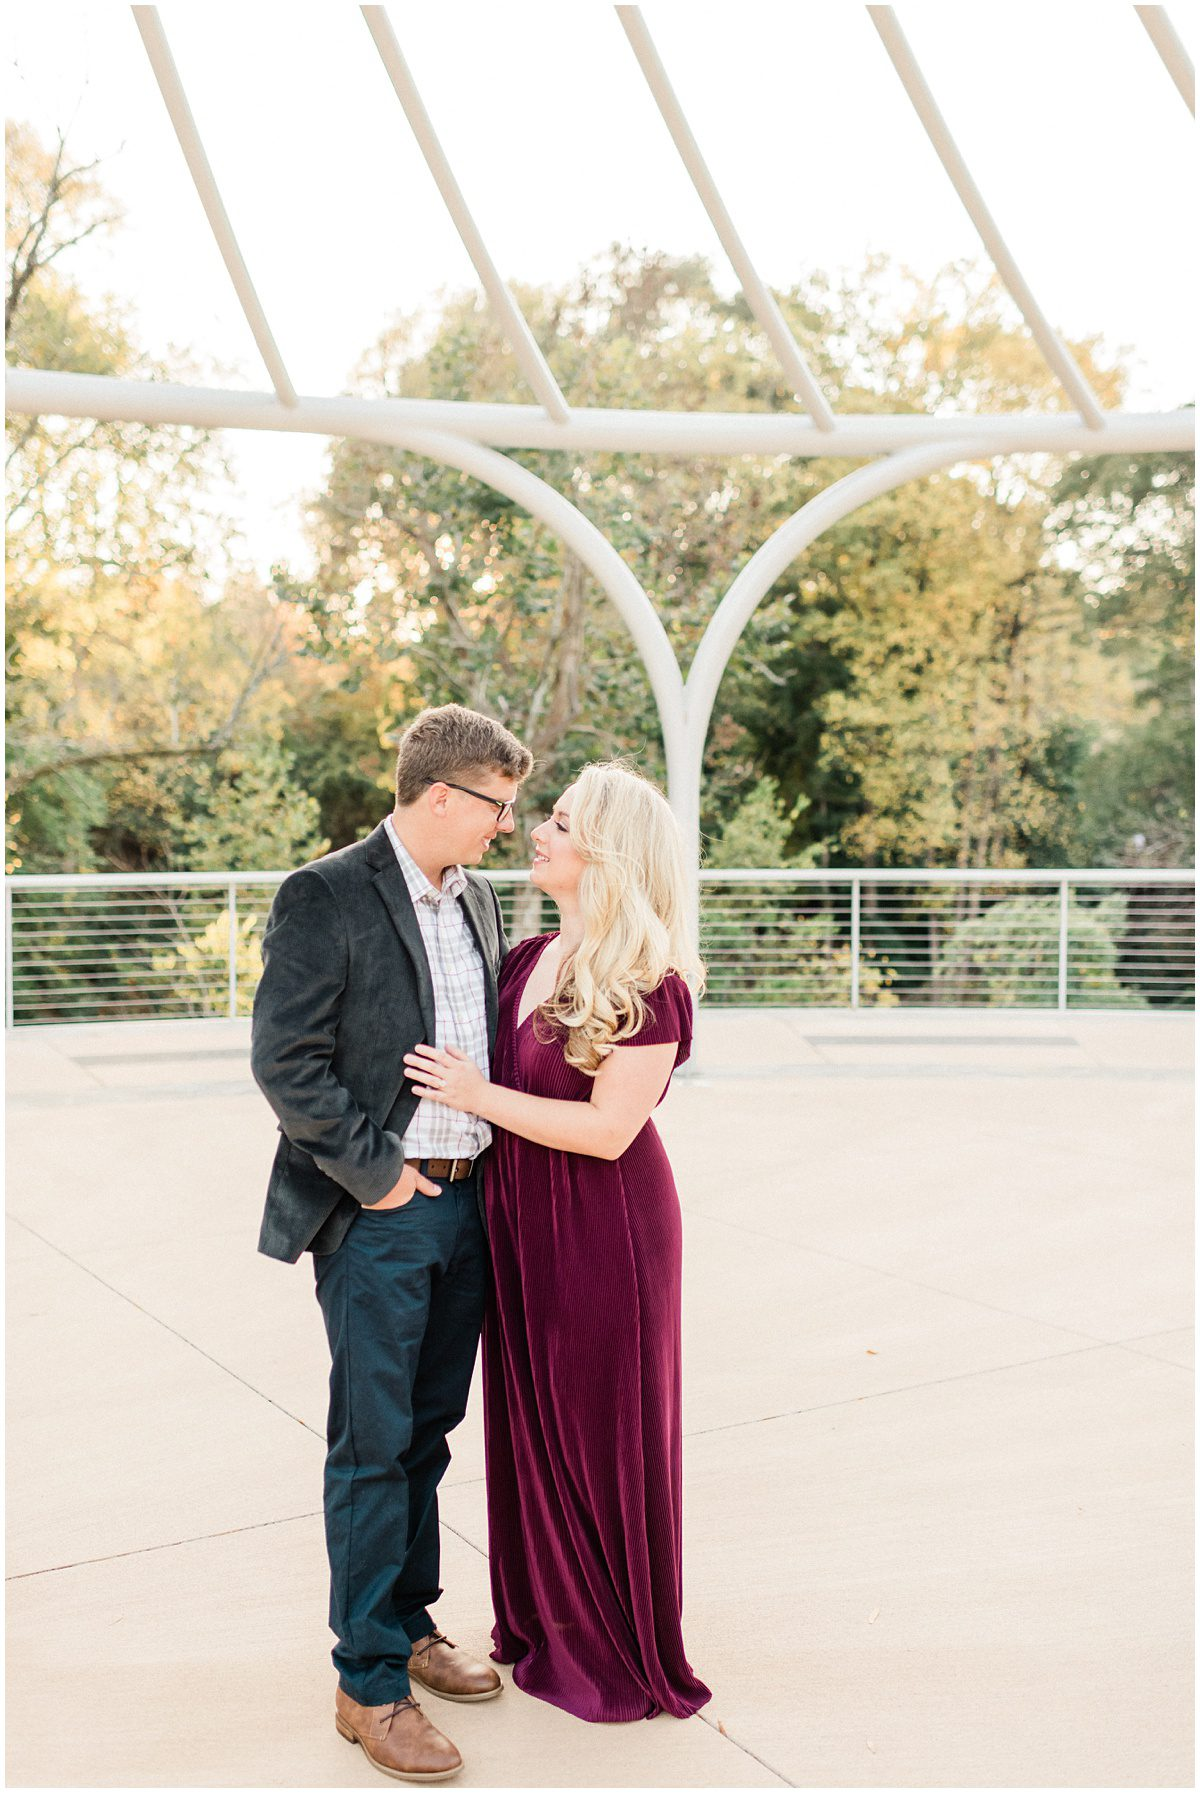 Cancer Survivors Park Engagement Session in Greenville, SC